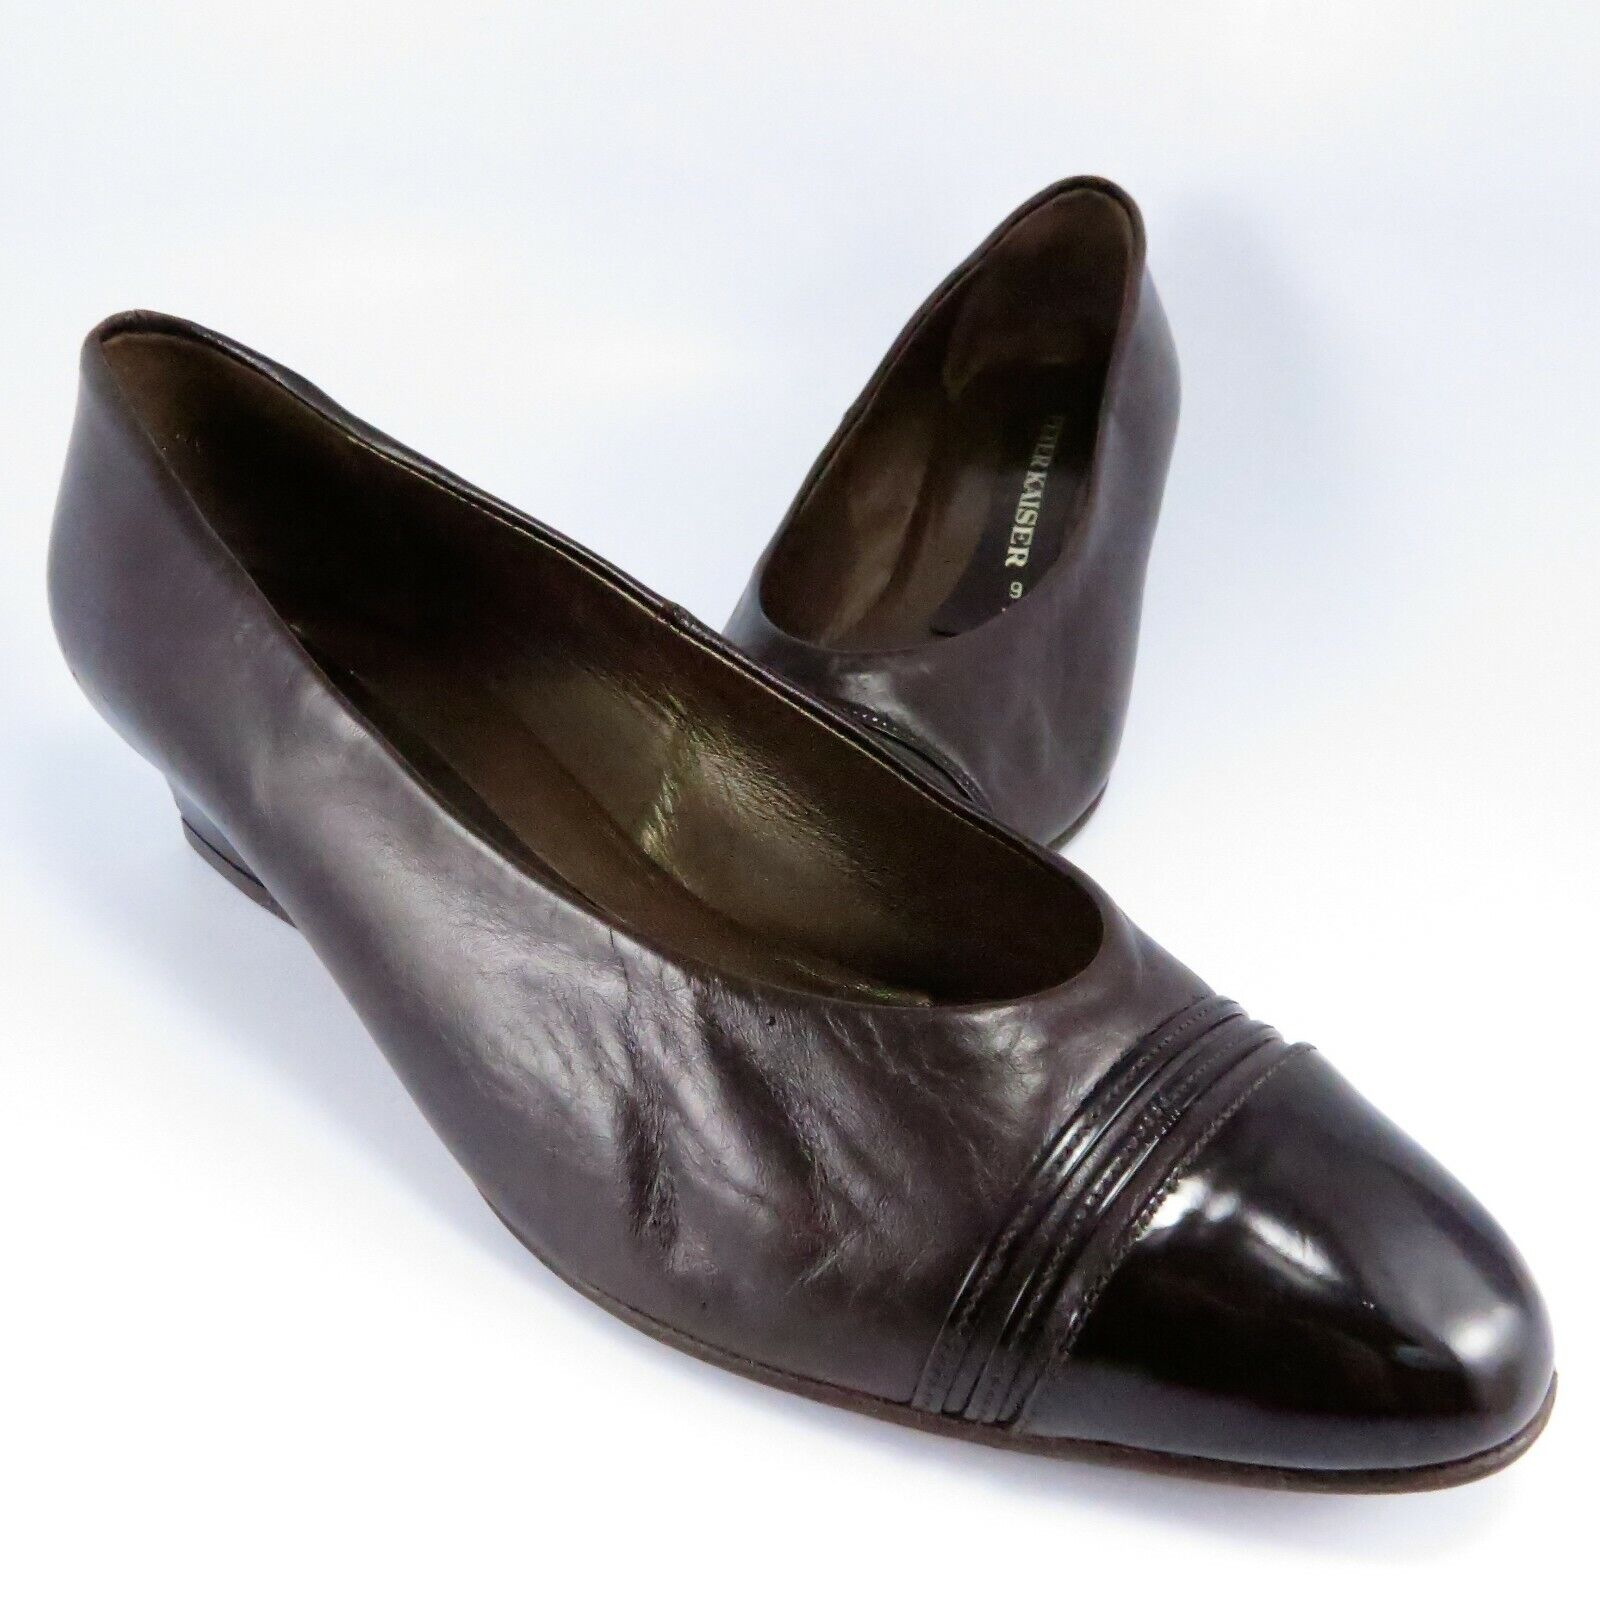 Peter Kaiser Dress Flats Womens Size 9M Brown Leather Patent-Toe Slip-Ons Pumps